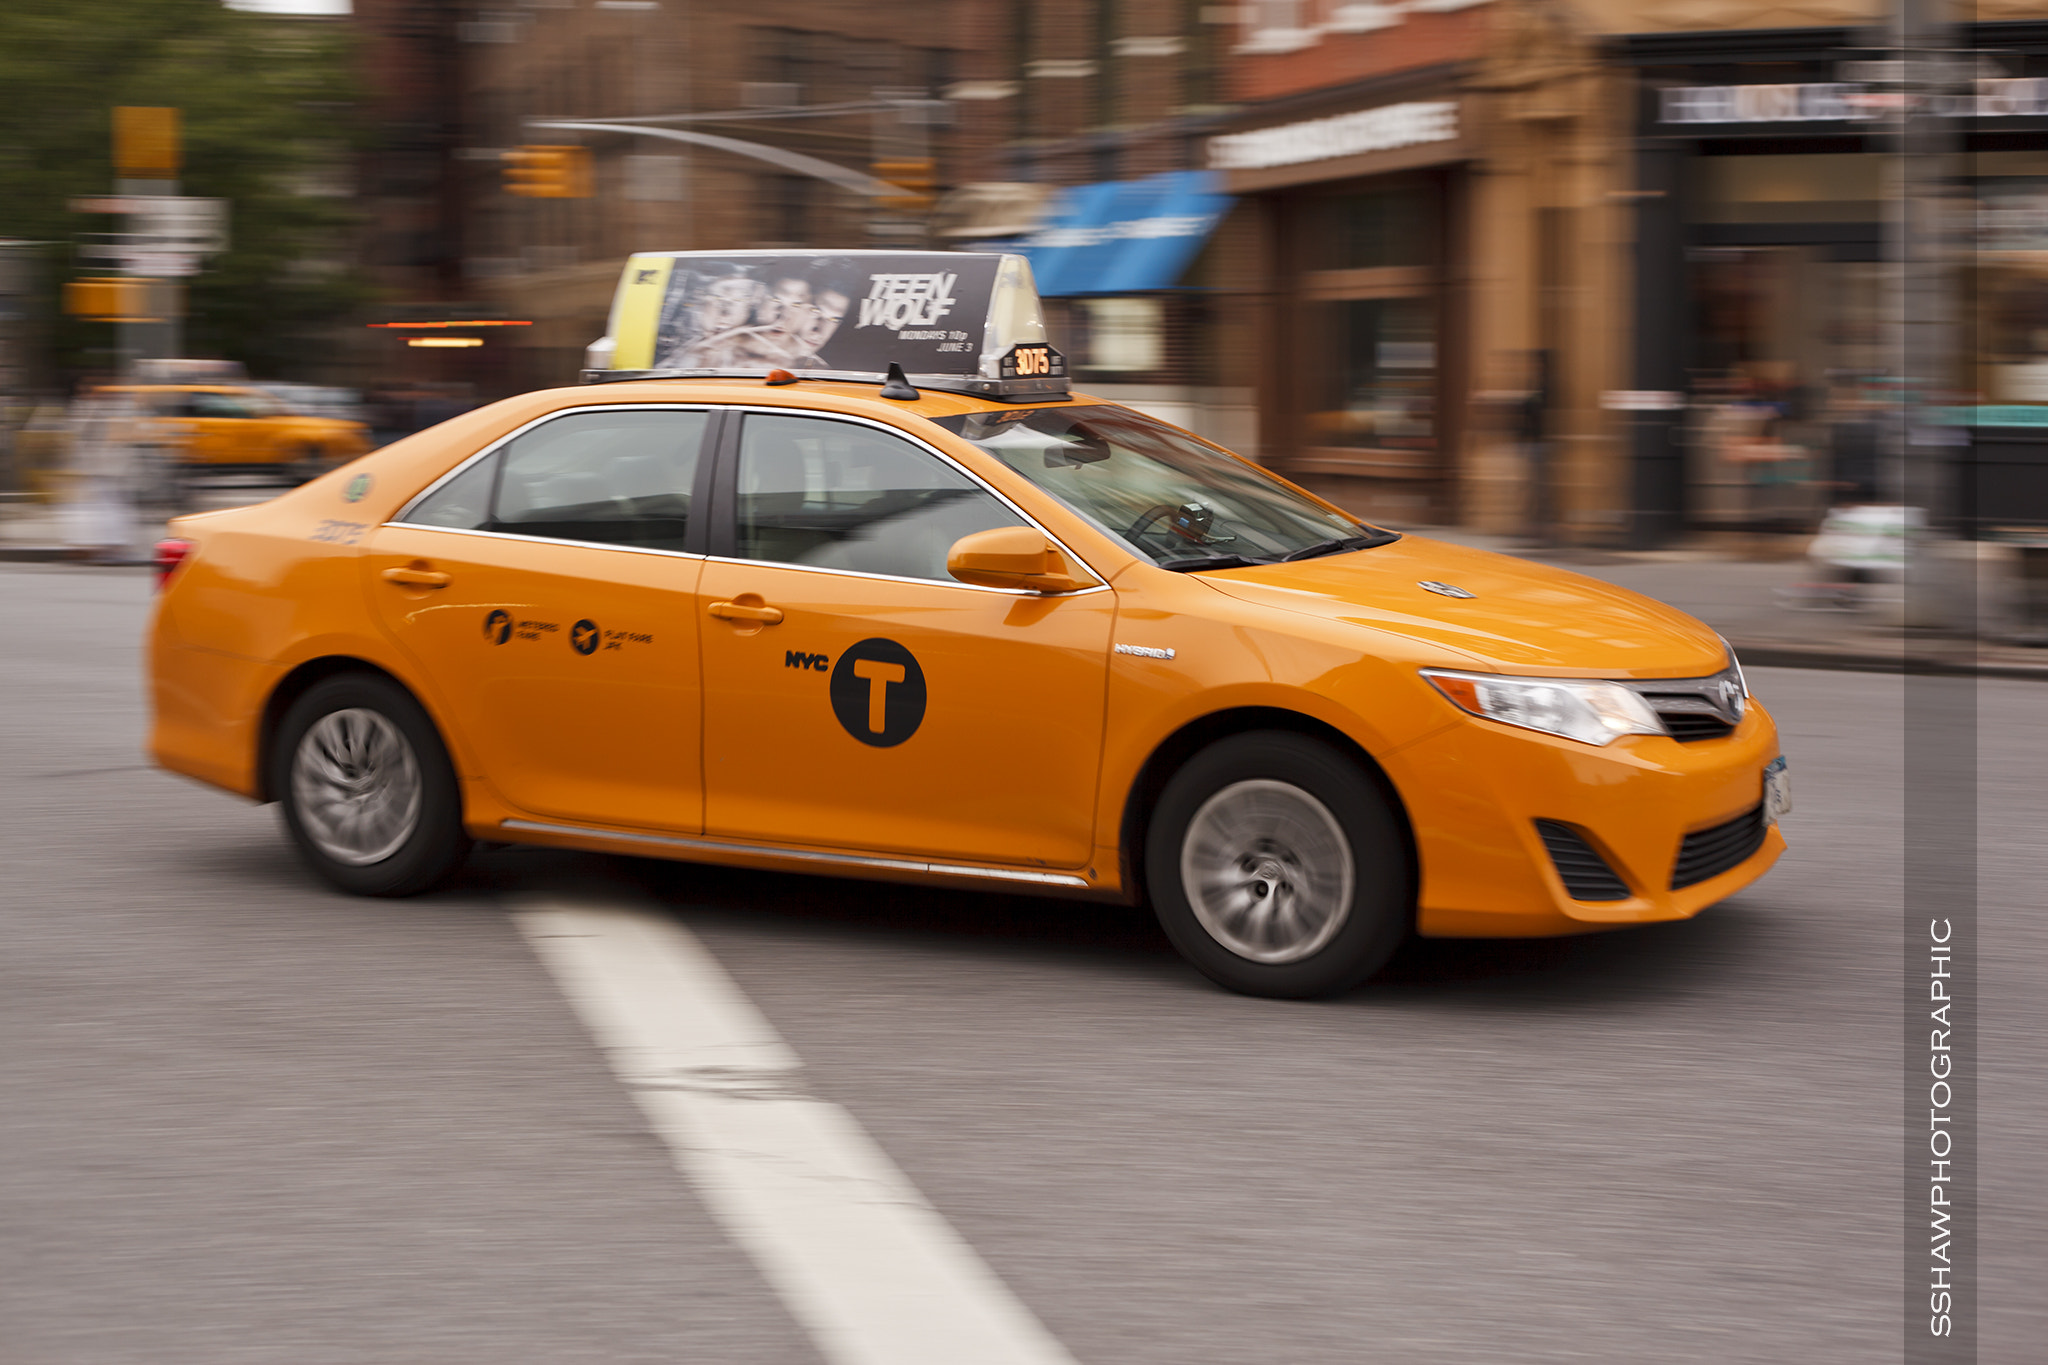 Photograph New Generation NYC Cabs by Shane Shaw on 500px